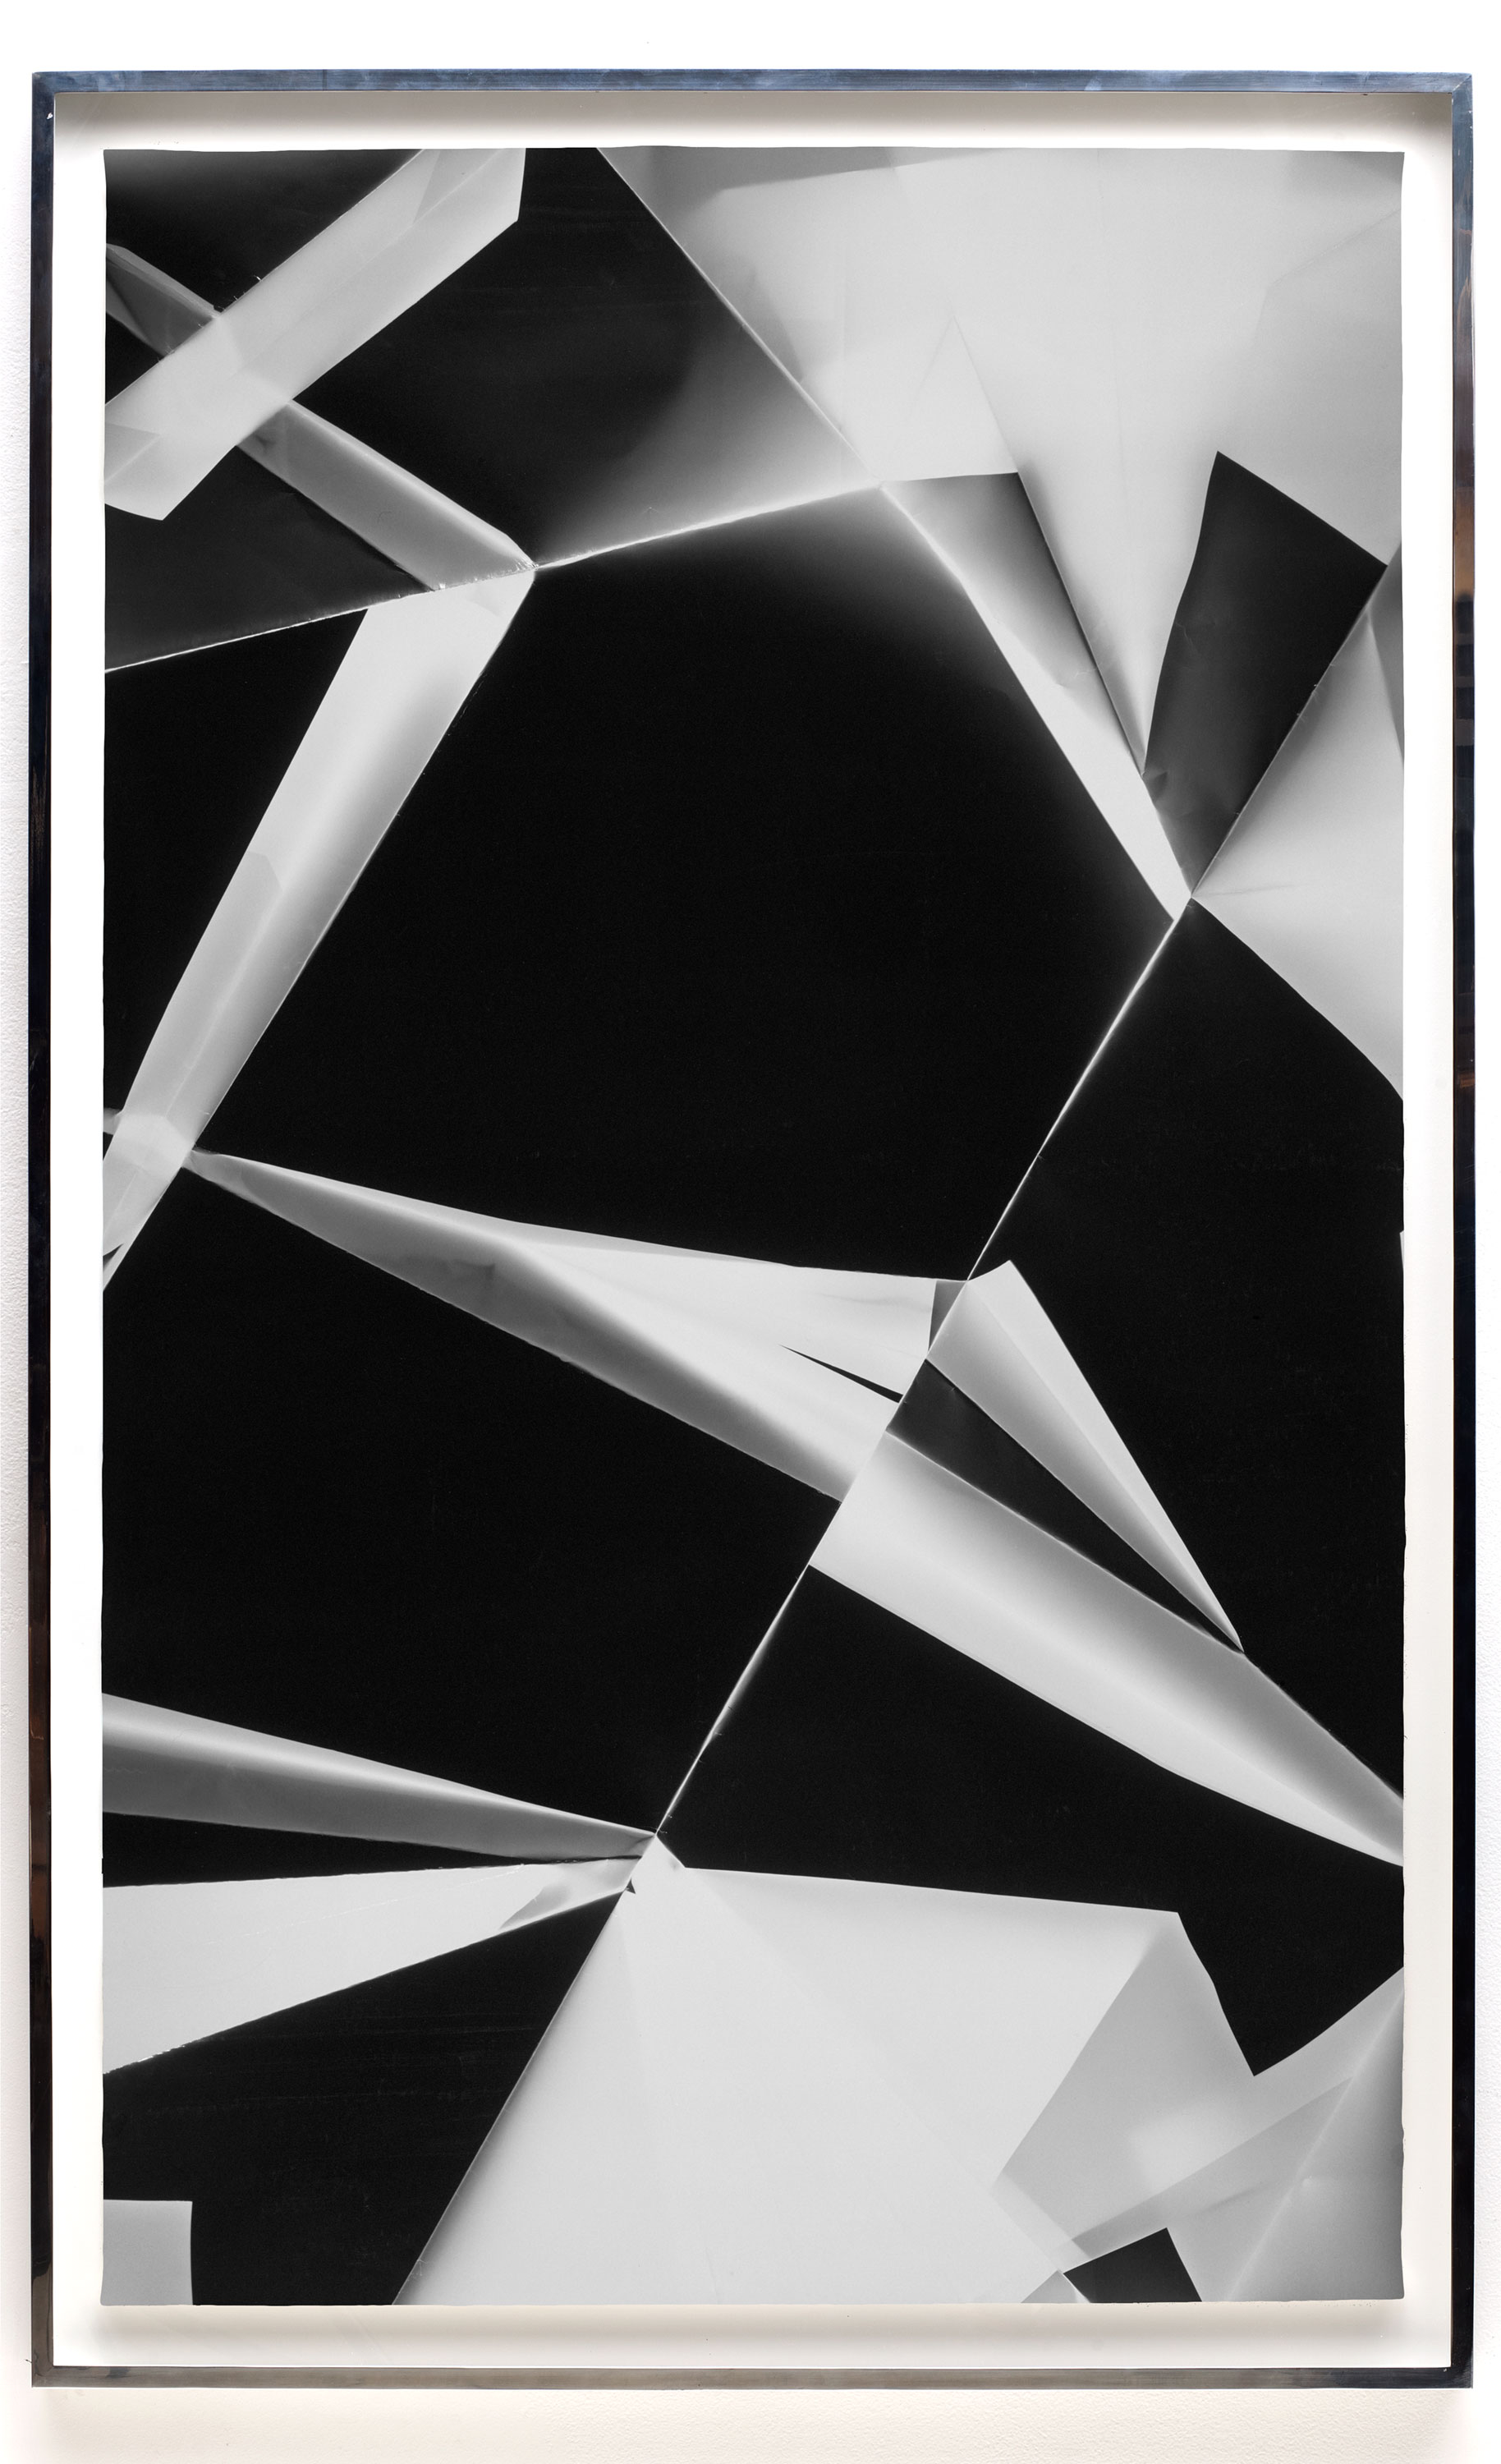 Fold (0º/90º/180º/270º directional light sources), June 13, 2008, Annandale-On-Hudson, New York, Foma Multigrade Fiber    2009   Black and white fiber based photographic paper  74 x 46 3/4 inches   Black and White Directional Folds, 2006–2014